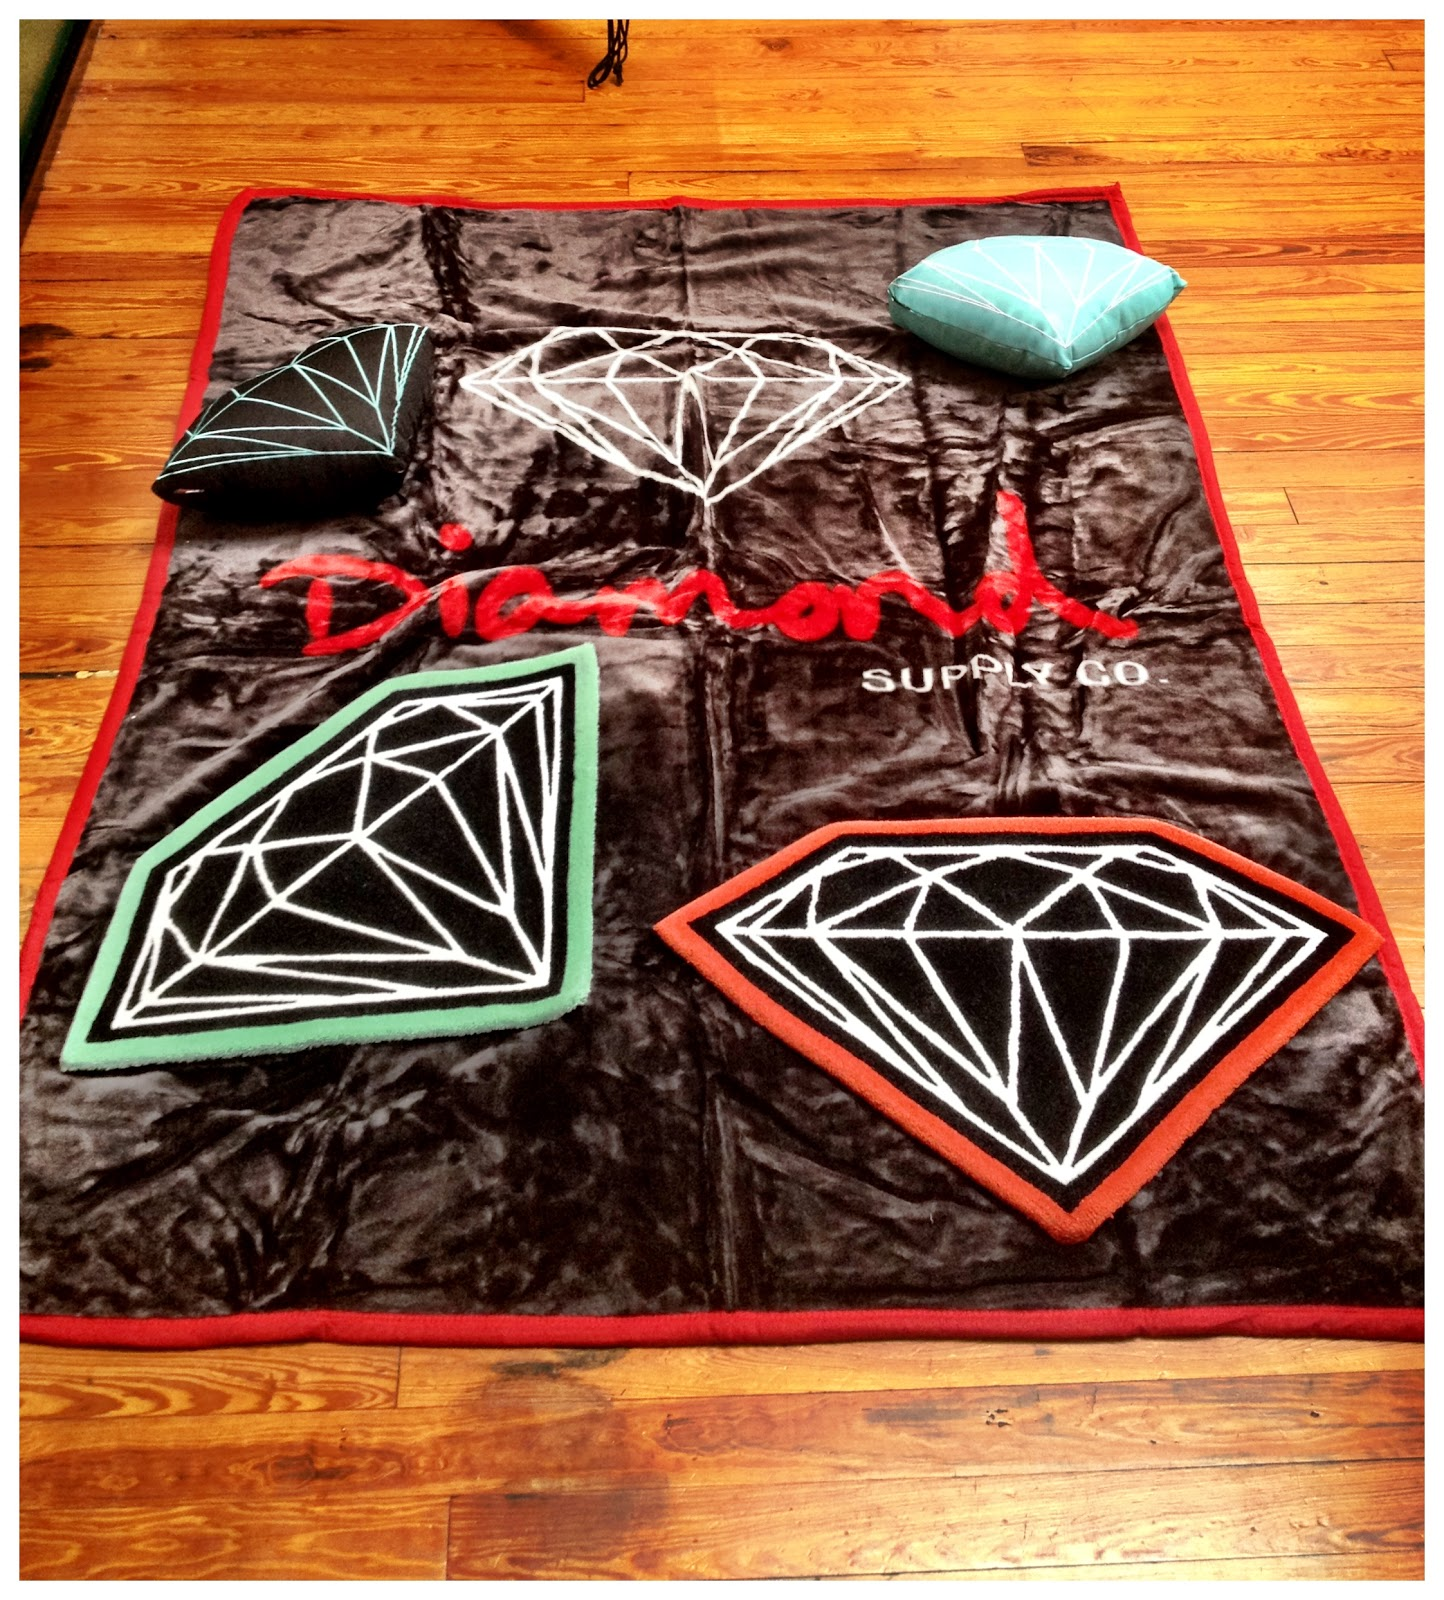 Relief Skate Supply New Diamond Co Blankets Rugs And